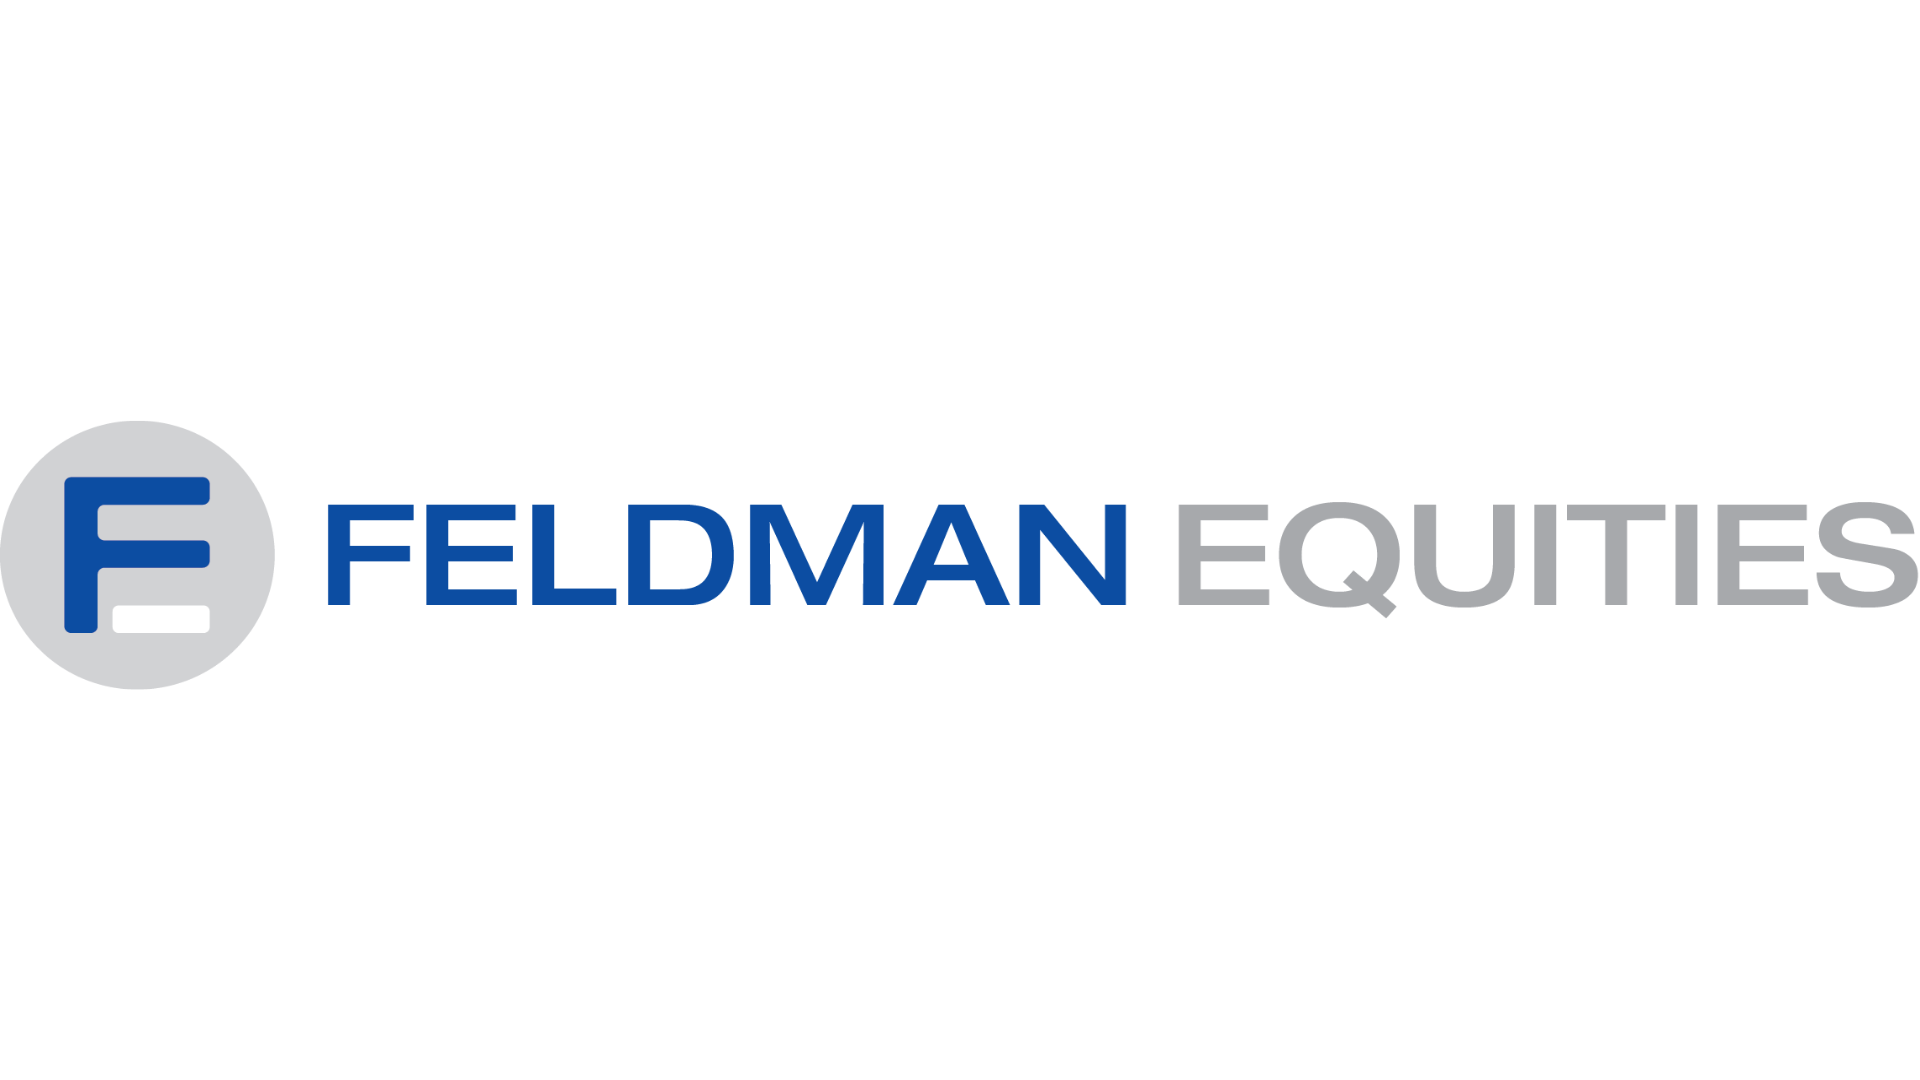 Feldman Equities